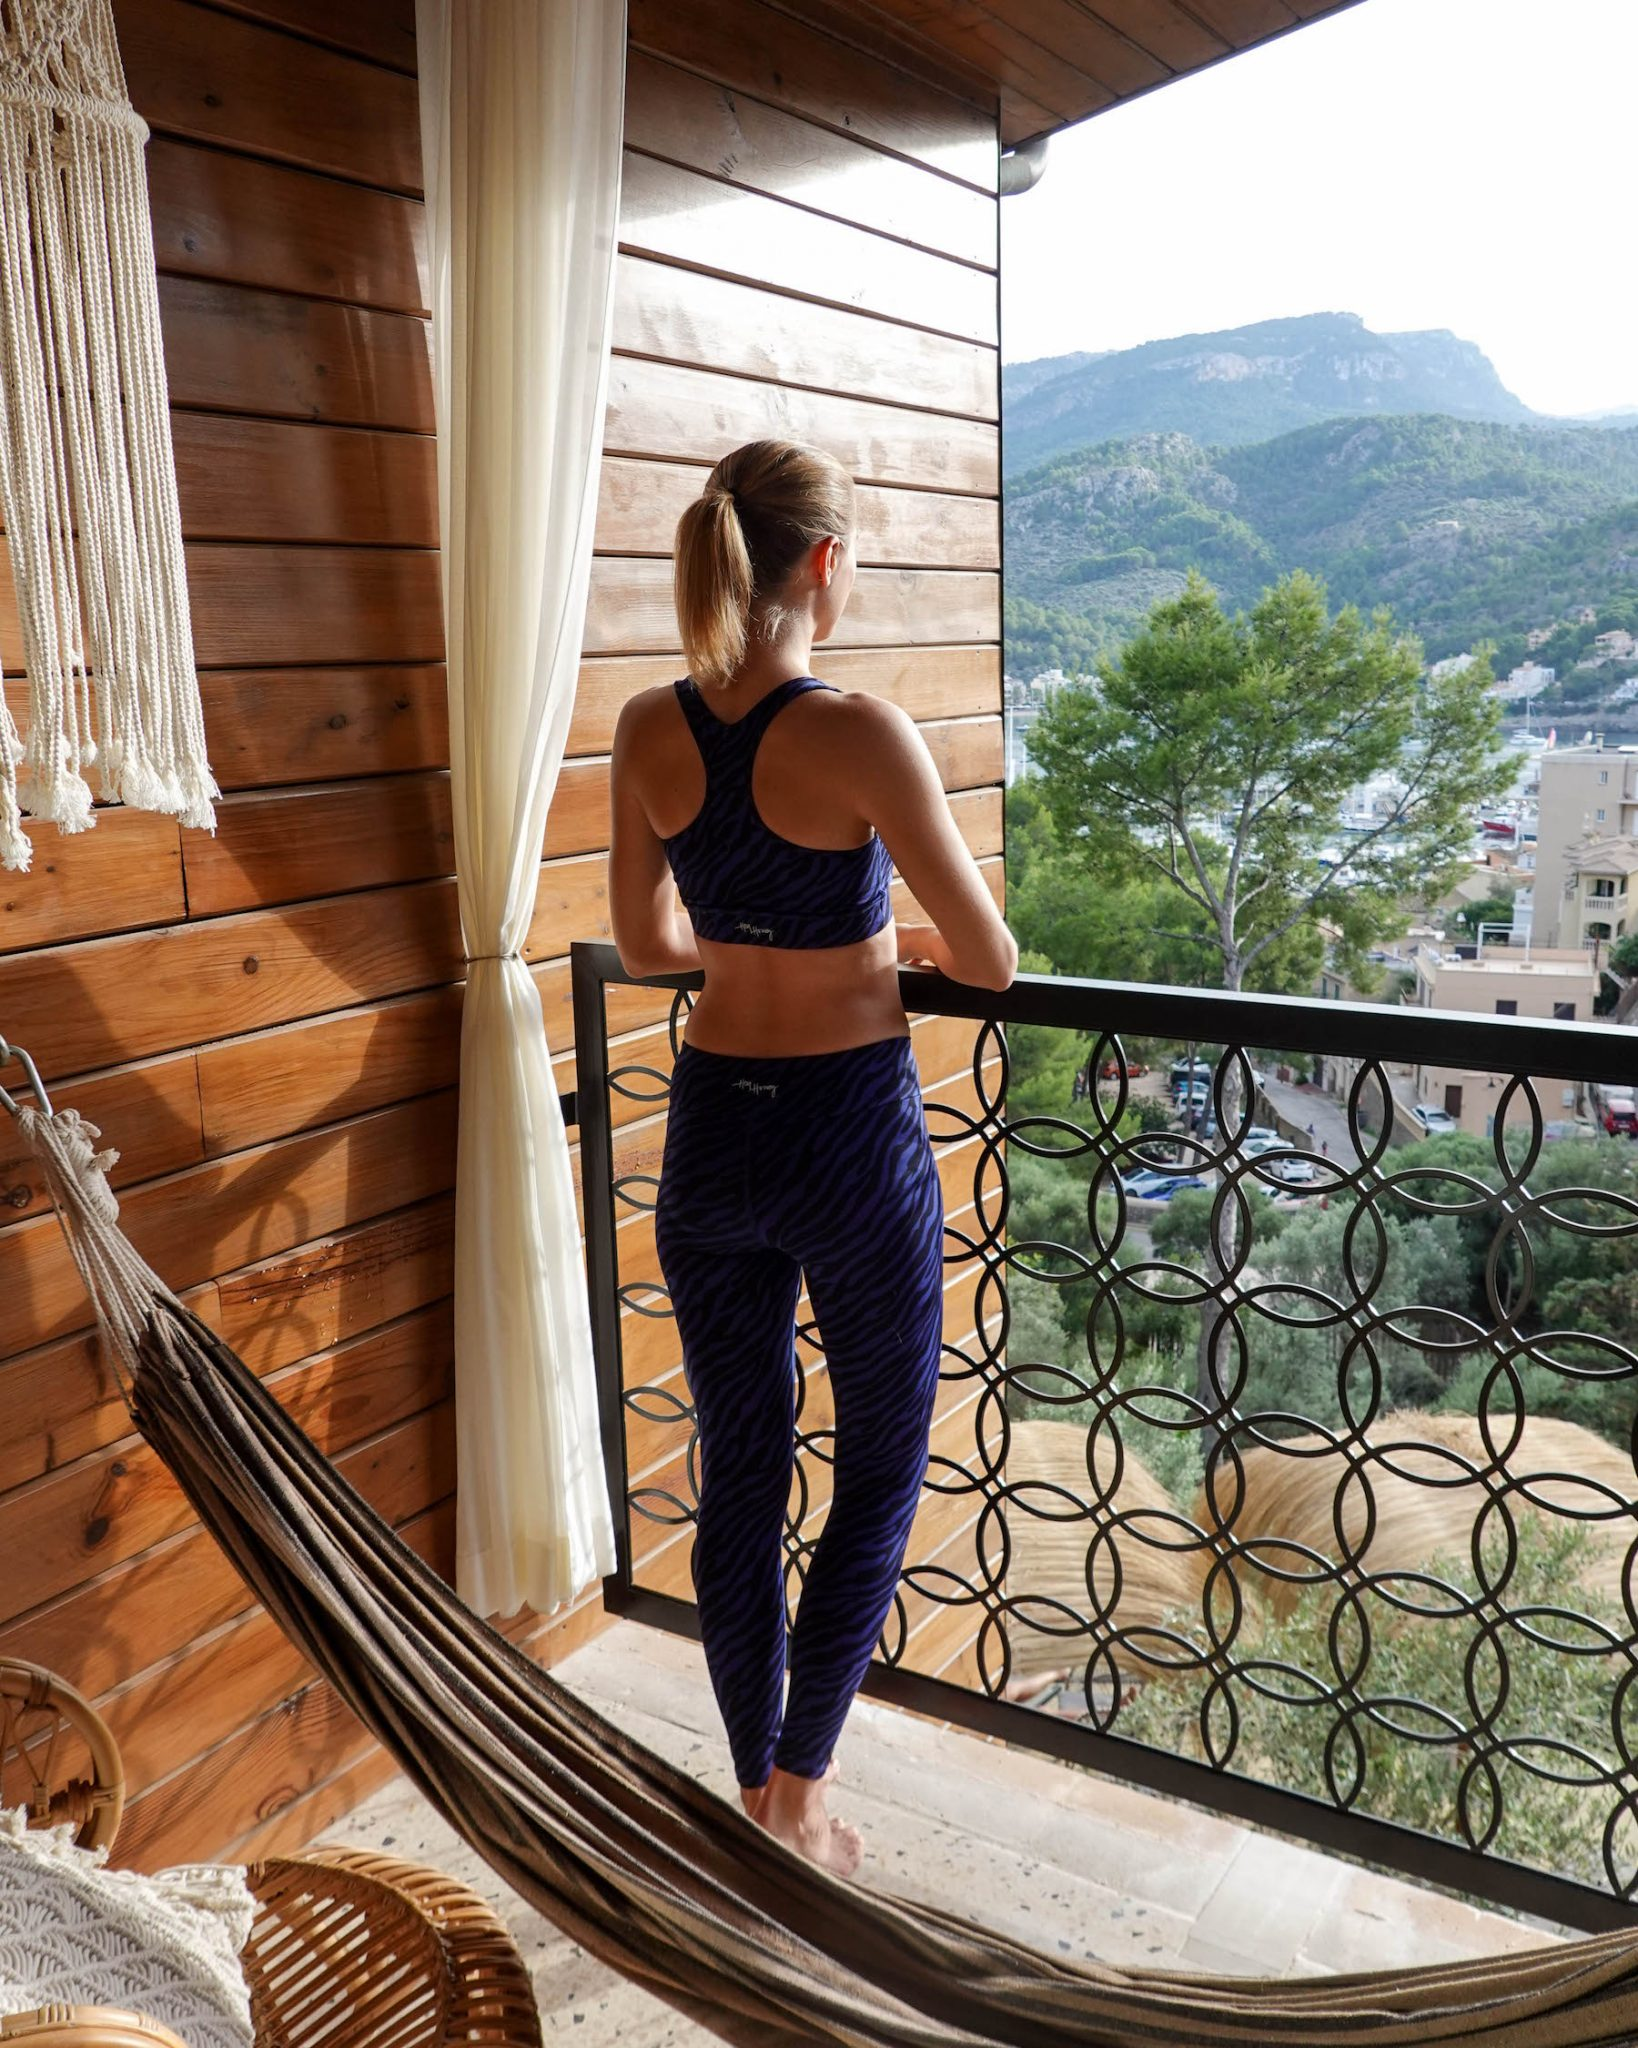 suelovesnyc_yoga_retreat_auf_mallorca_im_bikini_hotel_port_de_soller_bikini_island_and_mountain